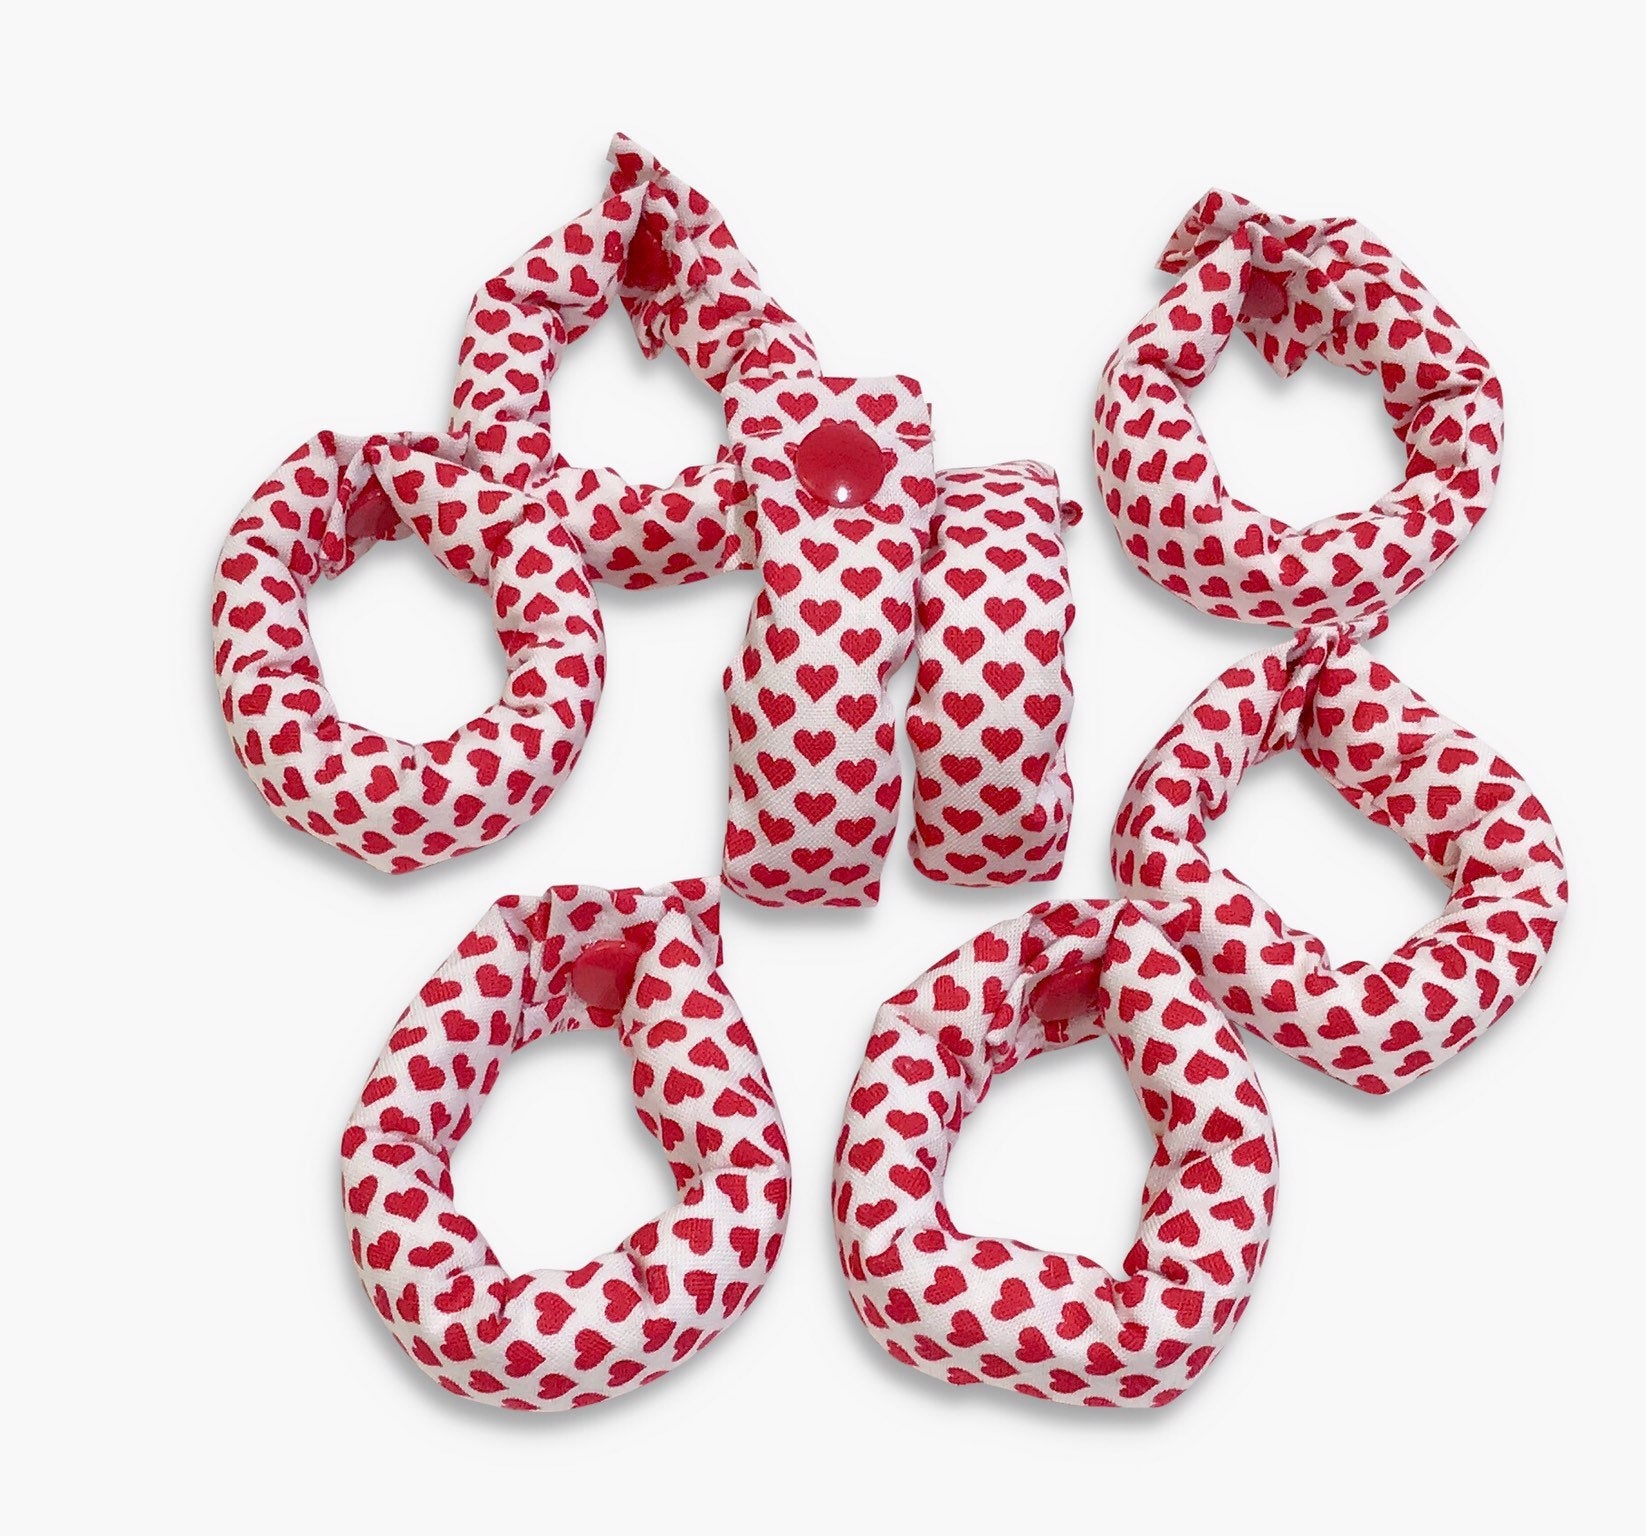 Red and White Hearts Hair Rollers, Hair Curlers, Hair Accessories, soft curlers - My Easy Curls